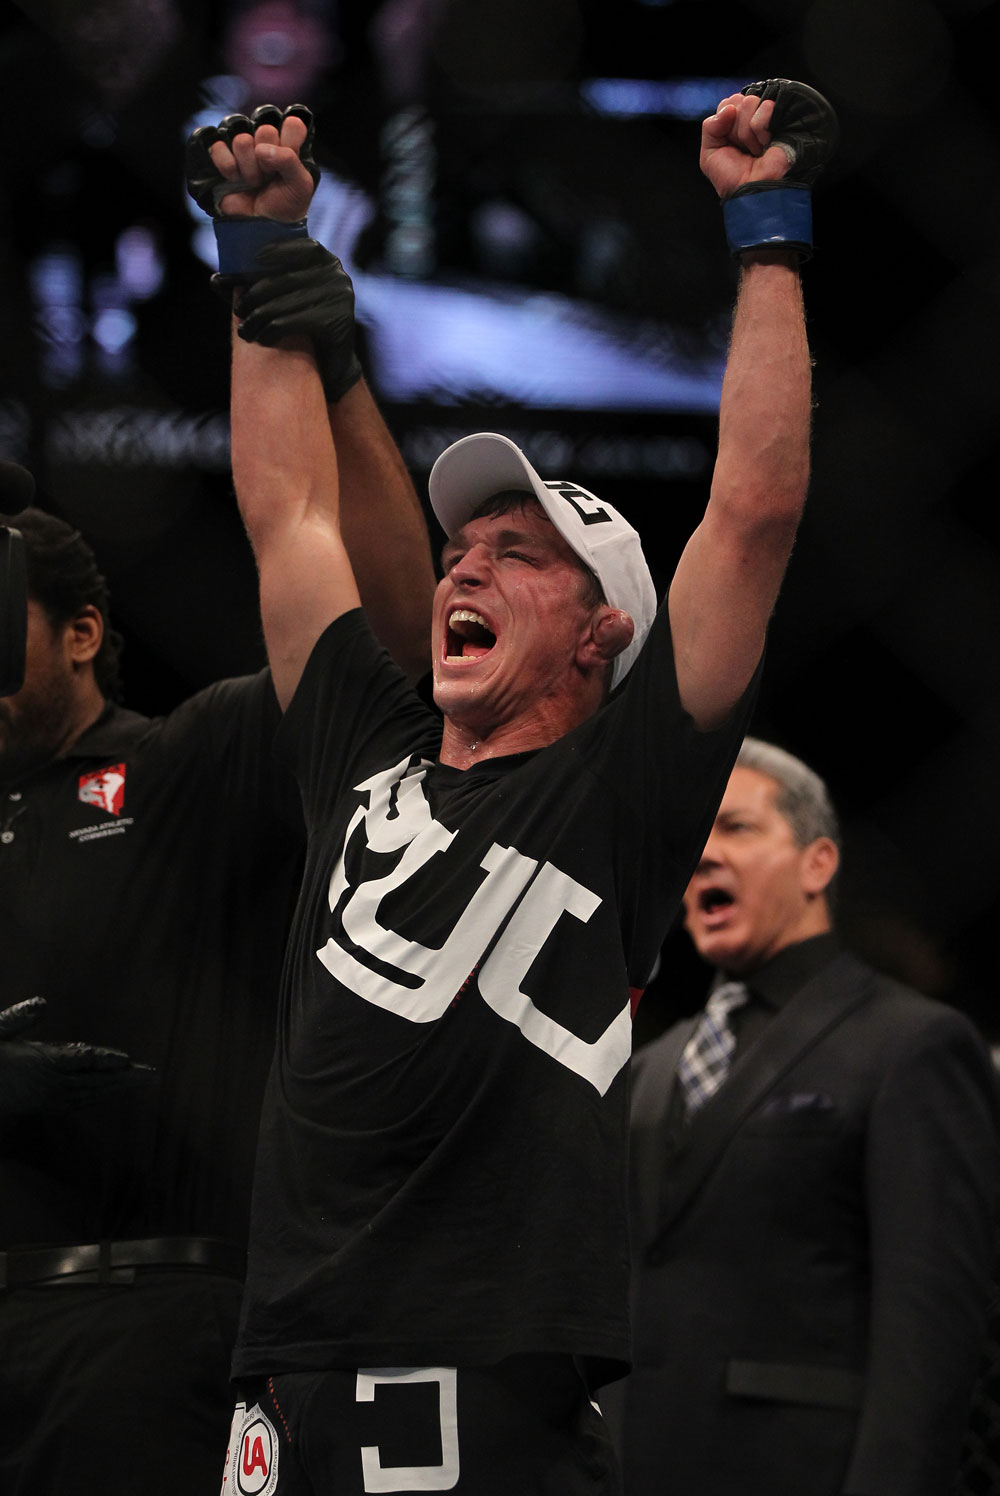 LAS VEGAS, NV - MAY 26:  Darren Elkins reacts to being declared the winner in his fight against Diego Brandao during a featherweight bout at UFC 146 at MGM Grand Garden Arena on May 26, 2012 in Las Vegas, Nevada.  (Photo by Josh Hedges/Zuffa LLC/Zuffa LLC via Getty Images)